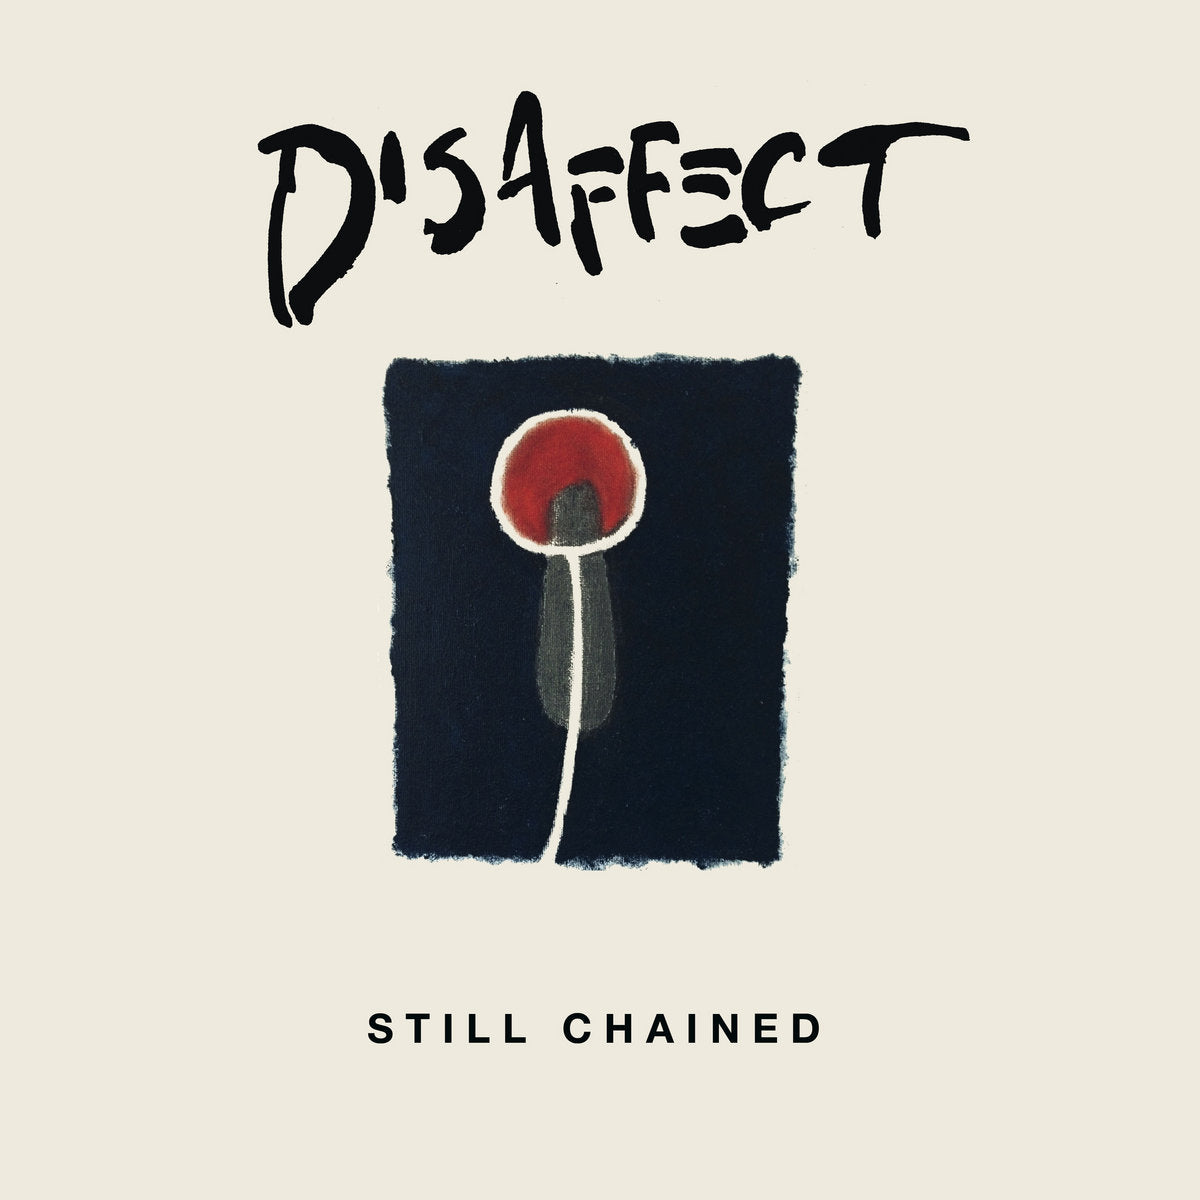 DISAFFECT - Still Chained (Discography) 2xLP